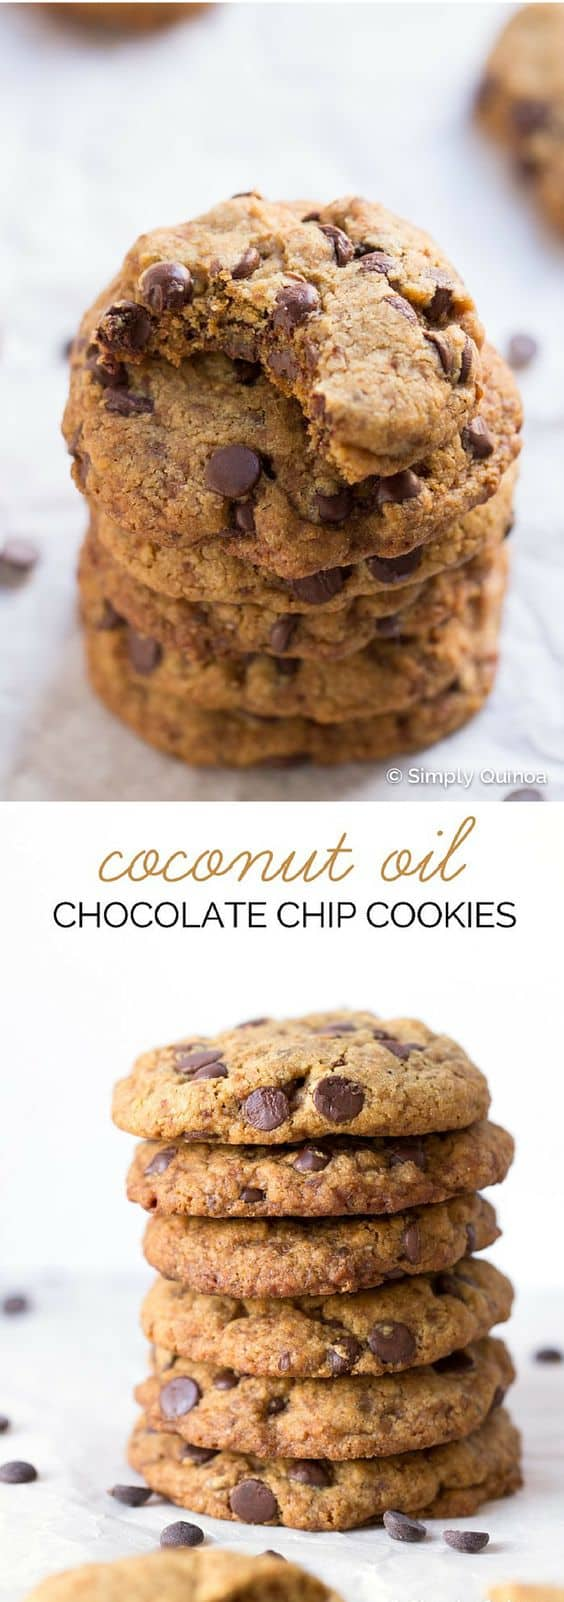 These cookies are AMAZING and guess what...they're made without butter, white flour, refined sugar AND eggs!! That's right they're gluten-free, vegan and they are CRAZZZY delicious!